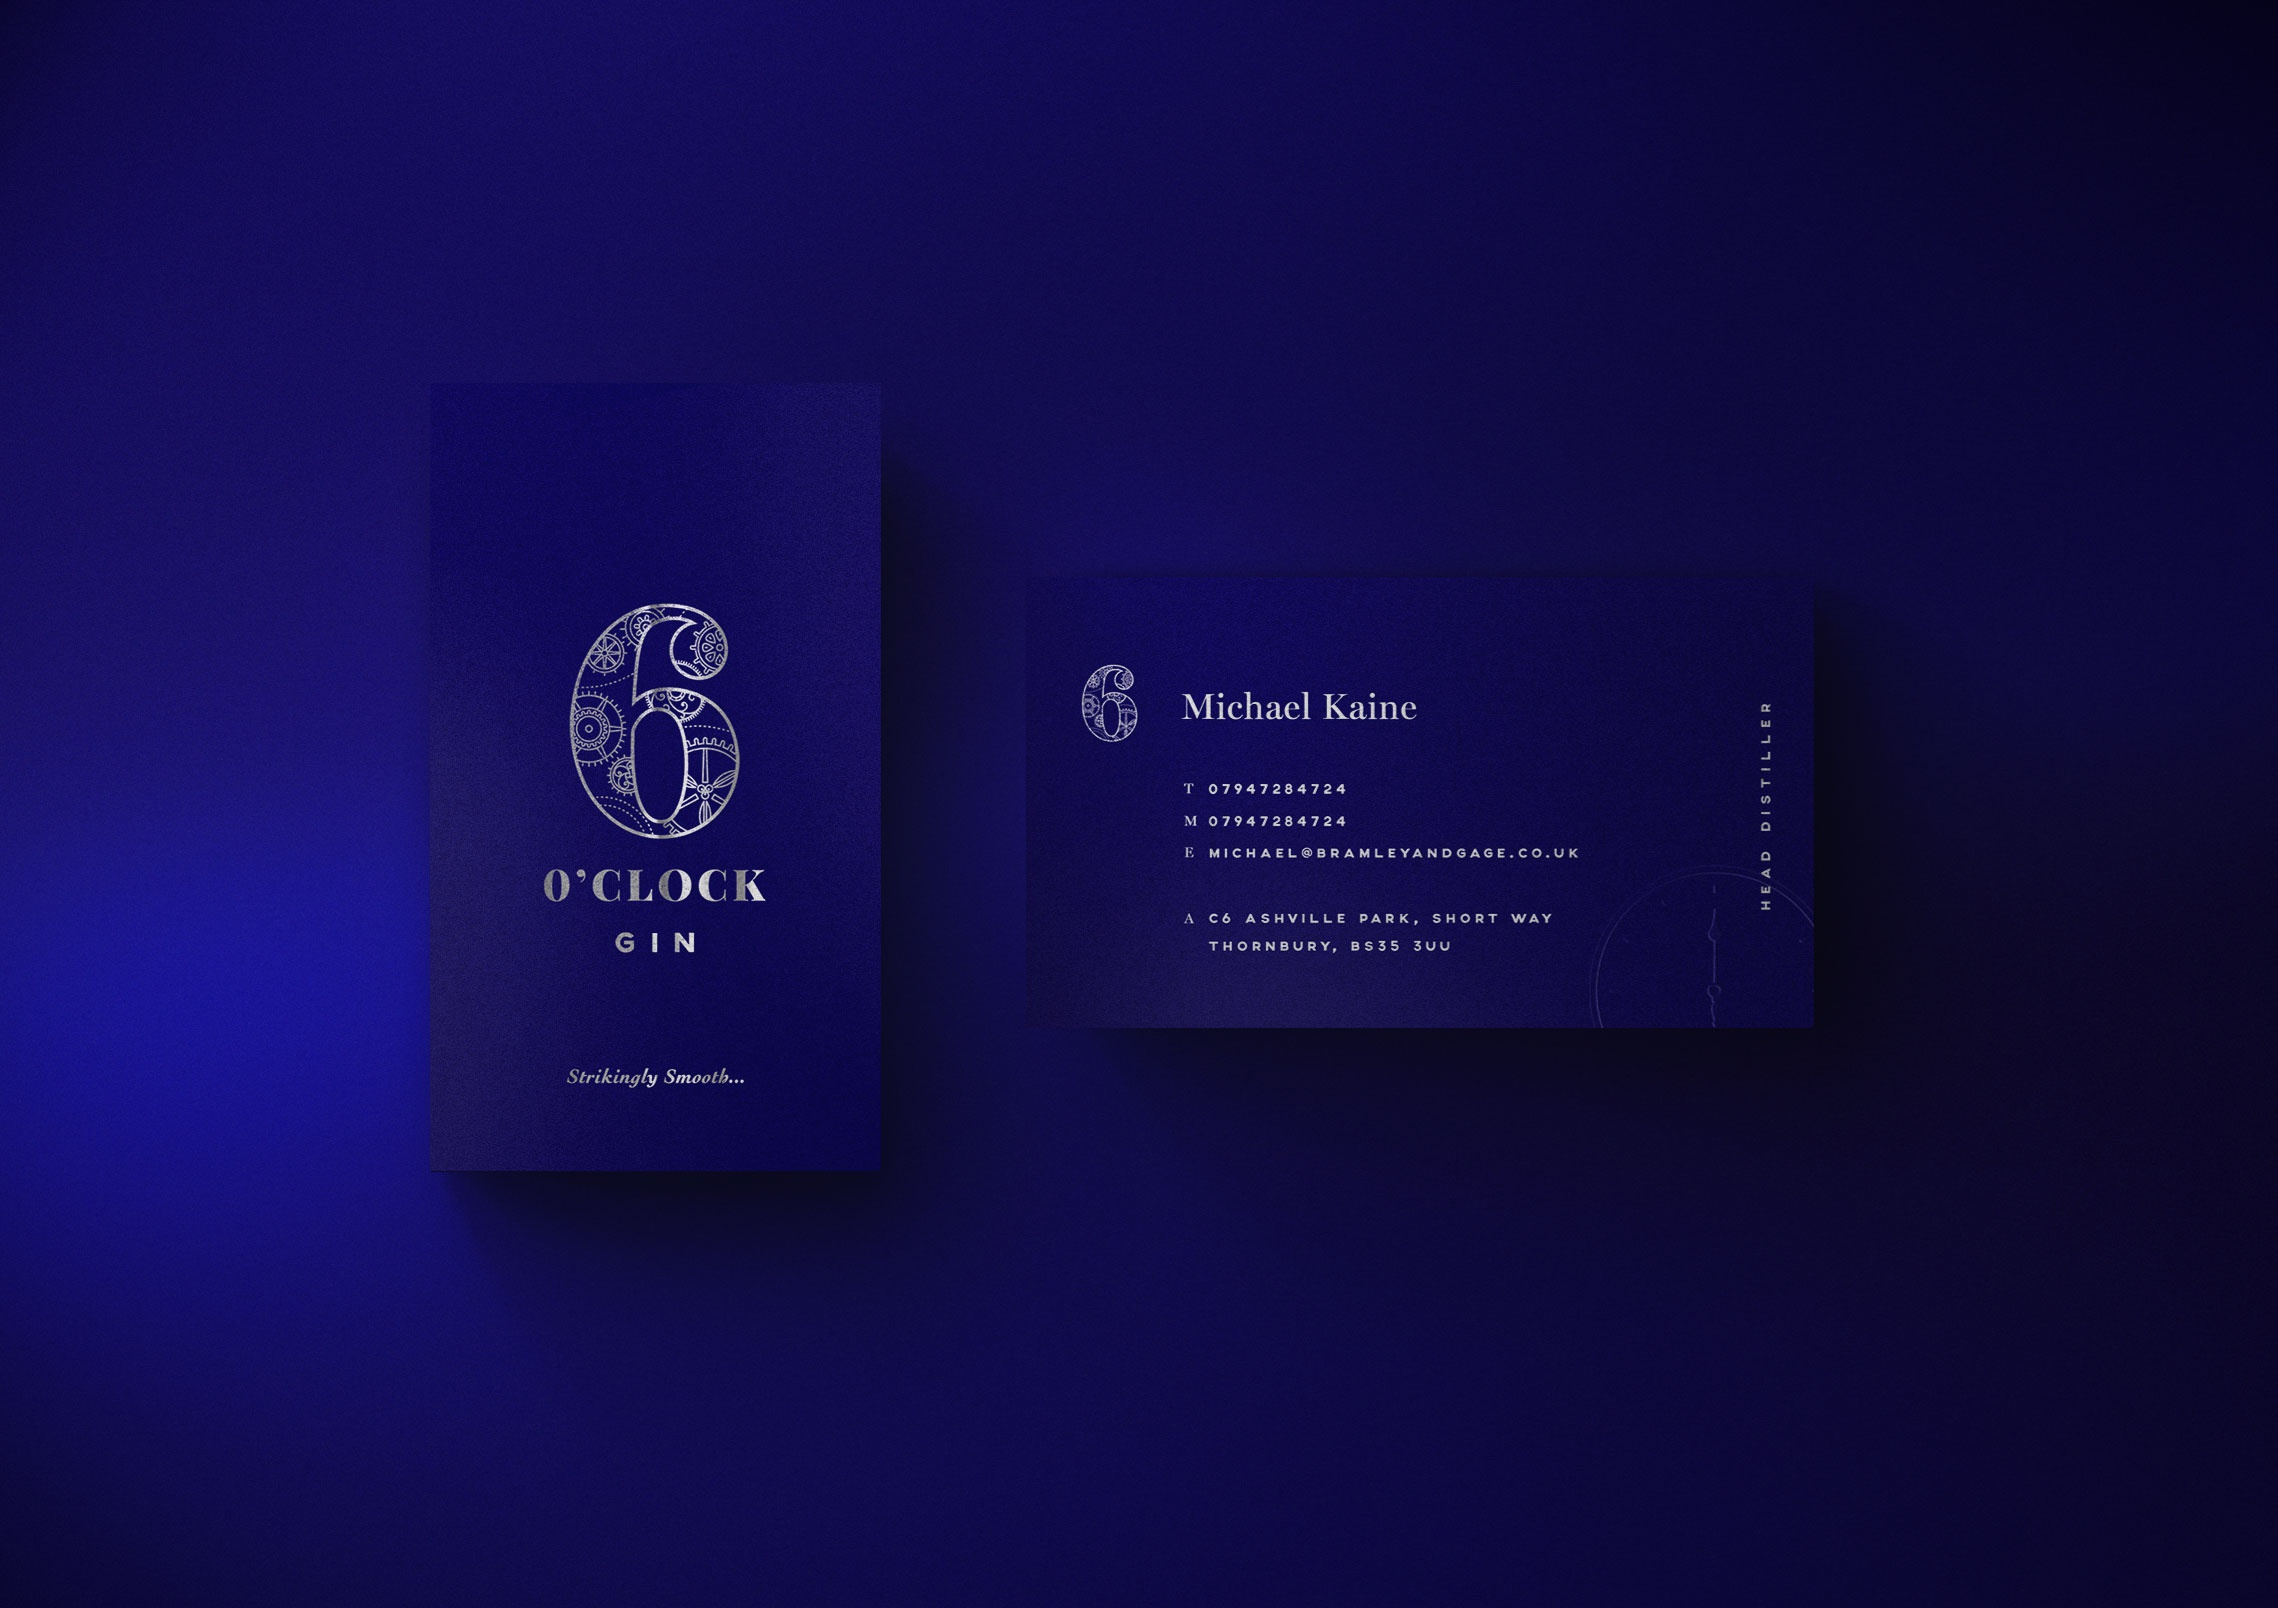 6 business card 2.0